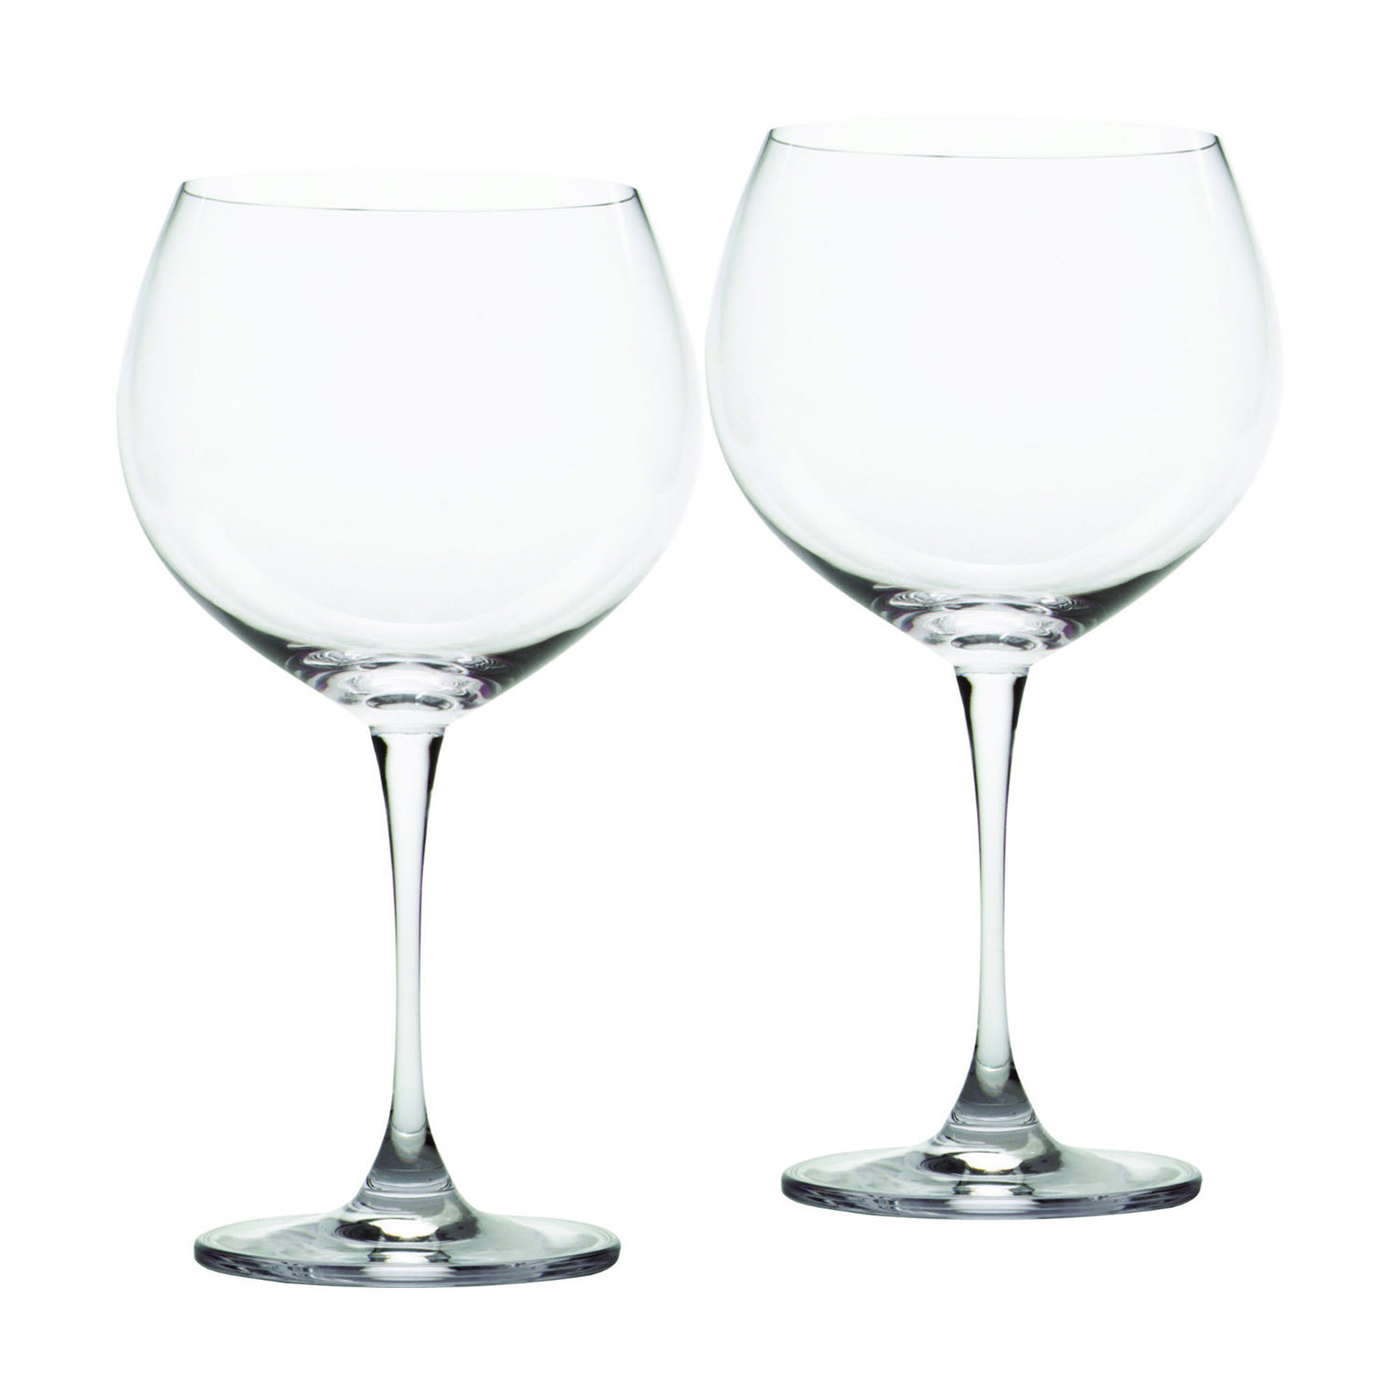 Chardonnay Wine Glass Robert Mondavi Chardonnay Wine Glass Pair By Waterford